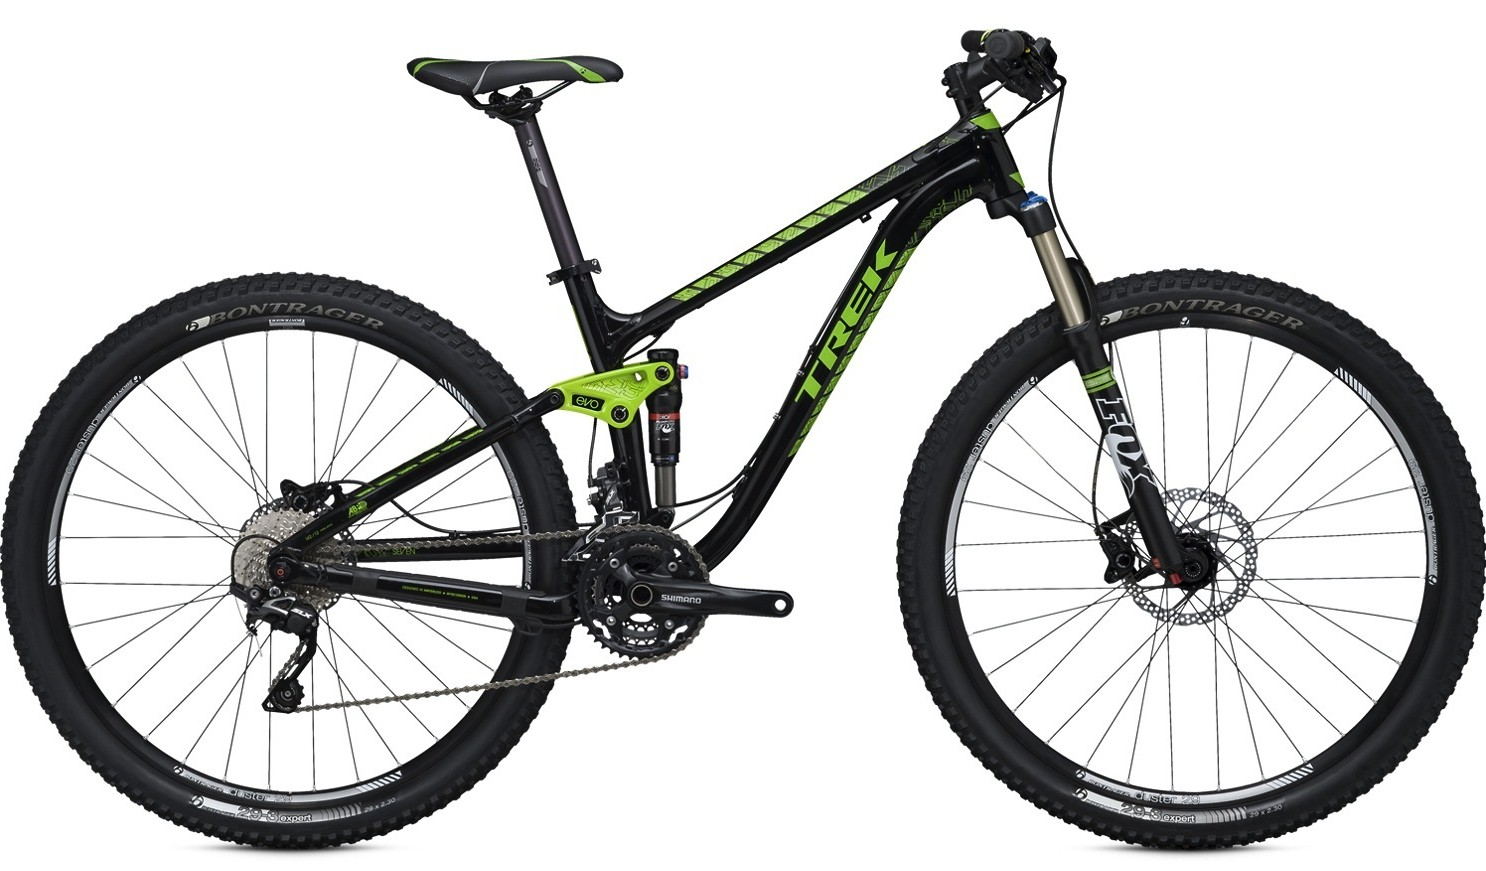 bike - 2014 Trek Fuel EX 7 29